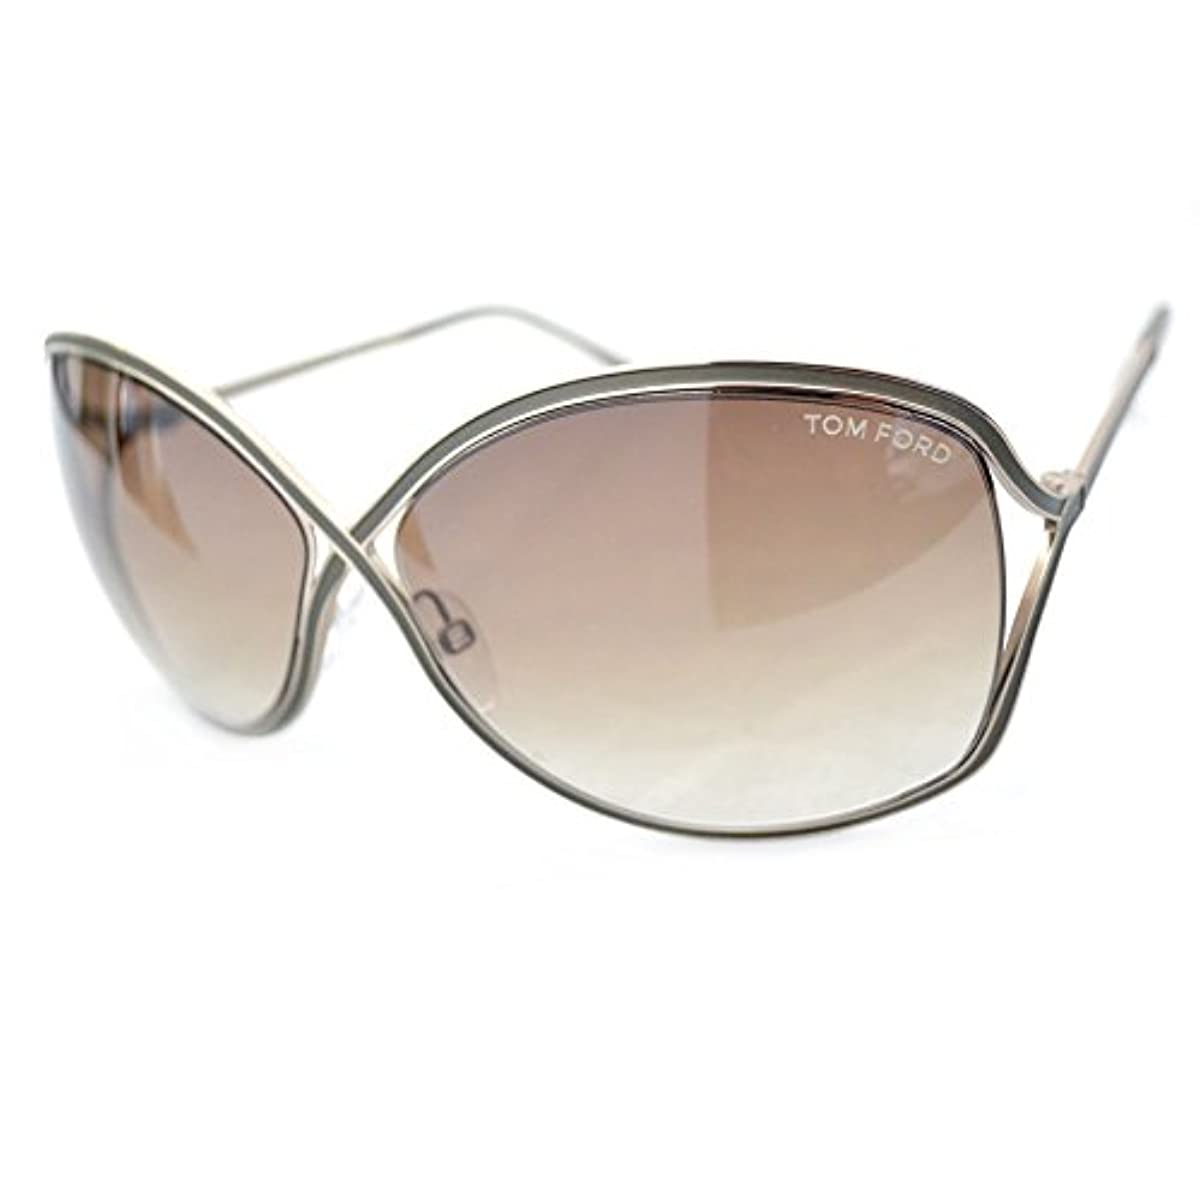 89846c2a7cf7  해외  TOM FORD TF179 RICKIE SUNGLASSES COLOR 38F PALE GOLD GRAY SIZE 64MM